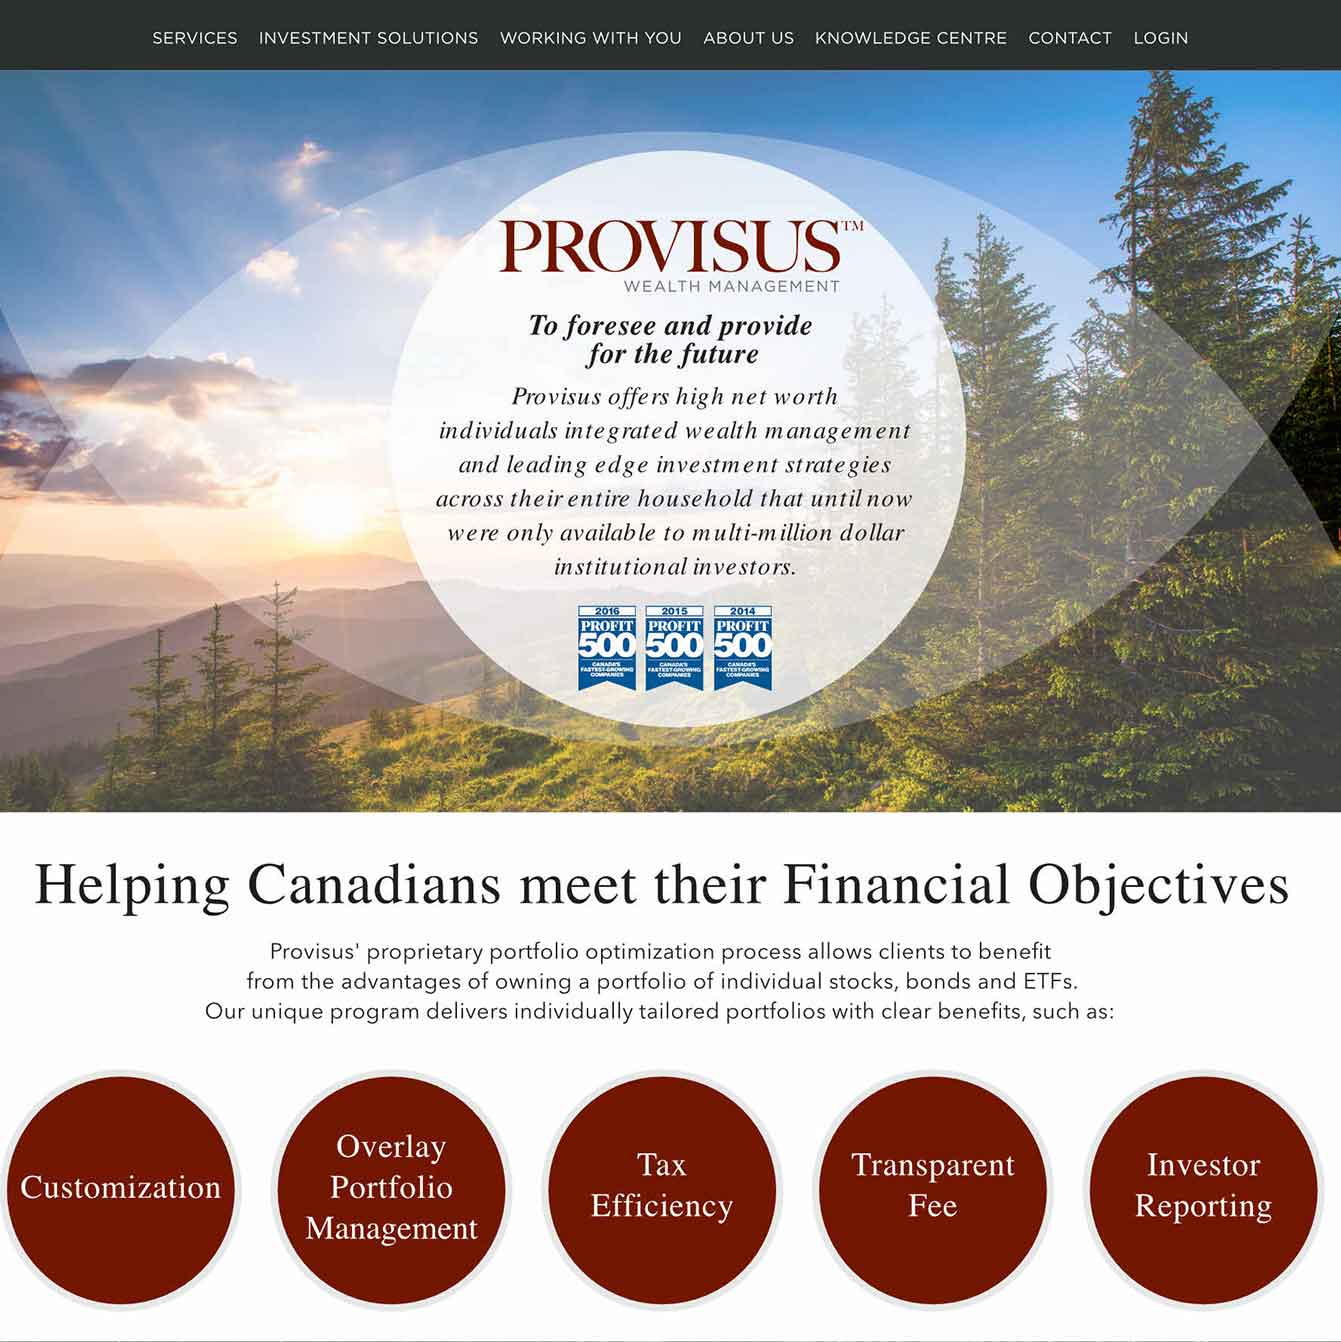 Web Design for Provisus.ca